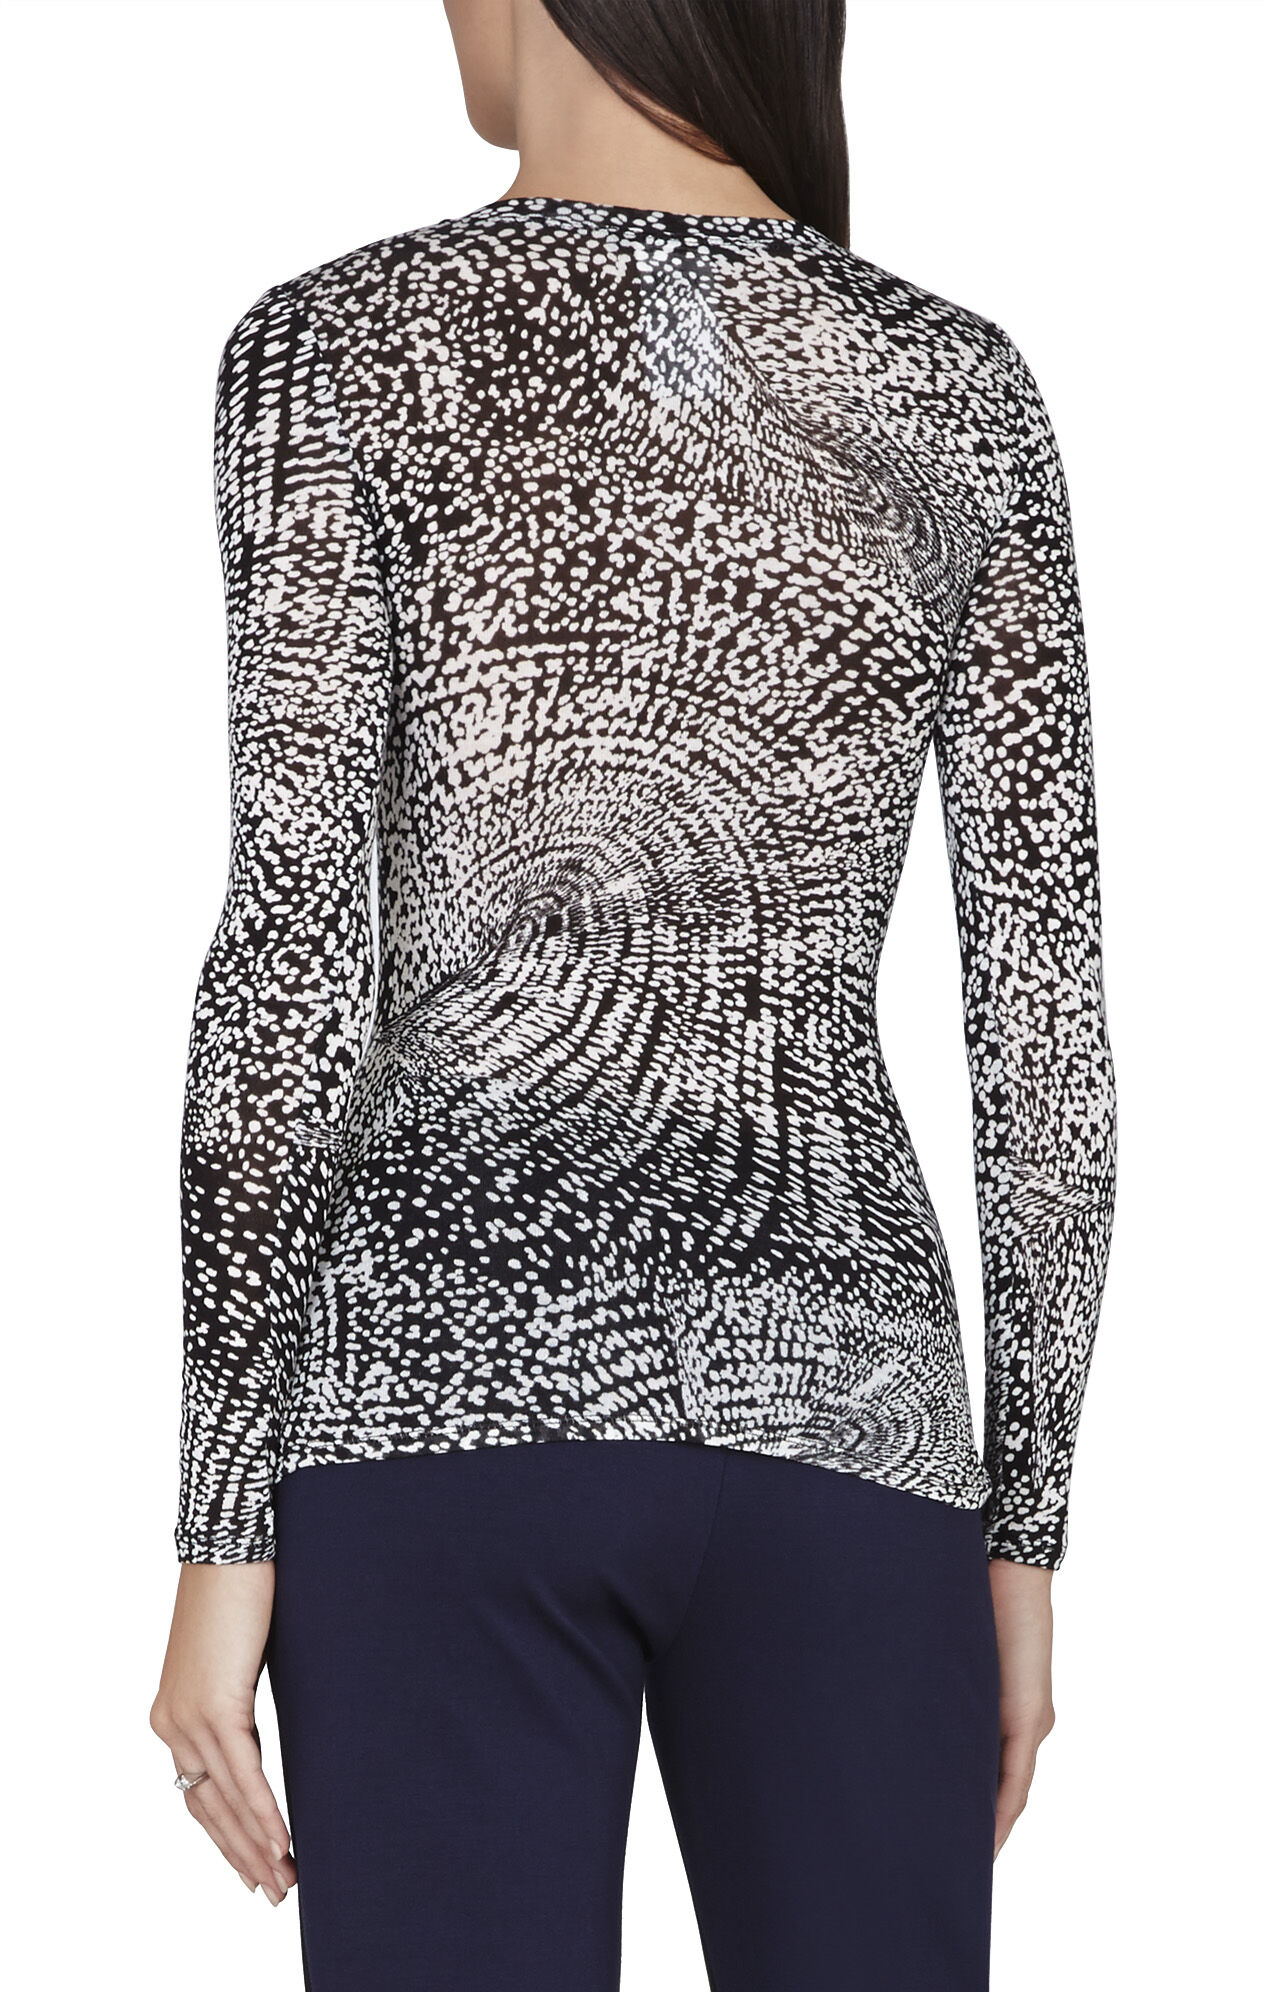 Womens Casual Tunic Tops Long Sleeve V Neck Loose Tshirt Pullover Sweatshirt Hoodies. from $ 6 99 Prime. Soffe. Women's Long-Sleeve V-Neck Tissue T-Shirt. from $ 6 99 Prime. 4 out of 5 stars YOcheerful. Mens Solid Sexy V Neck Long Sleeve Tee T Shirt Top Slim Blouse $ 4 Woman Within.